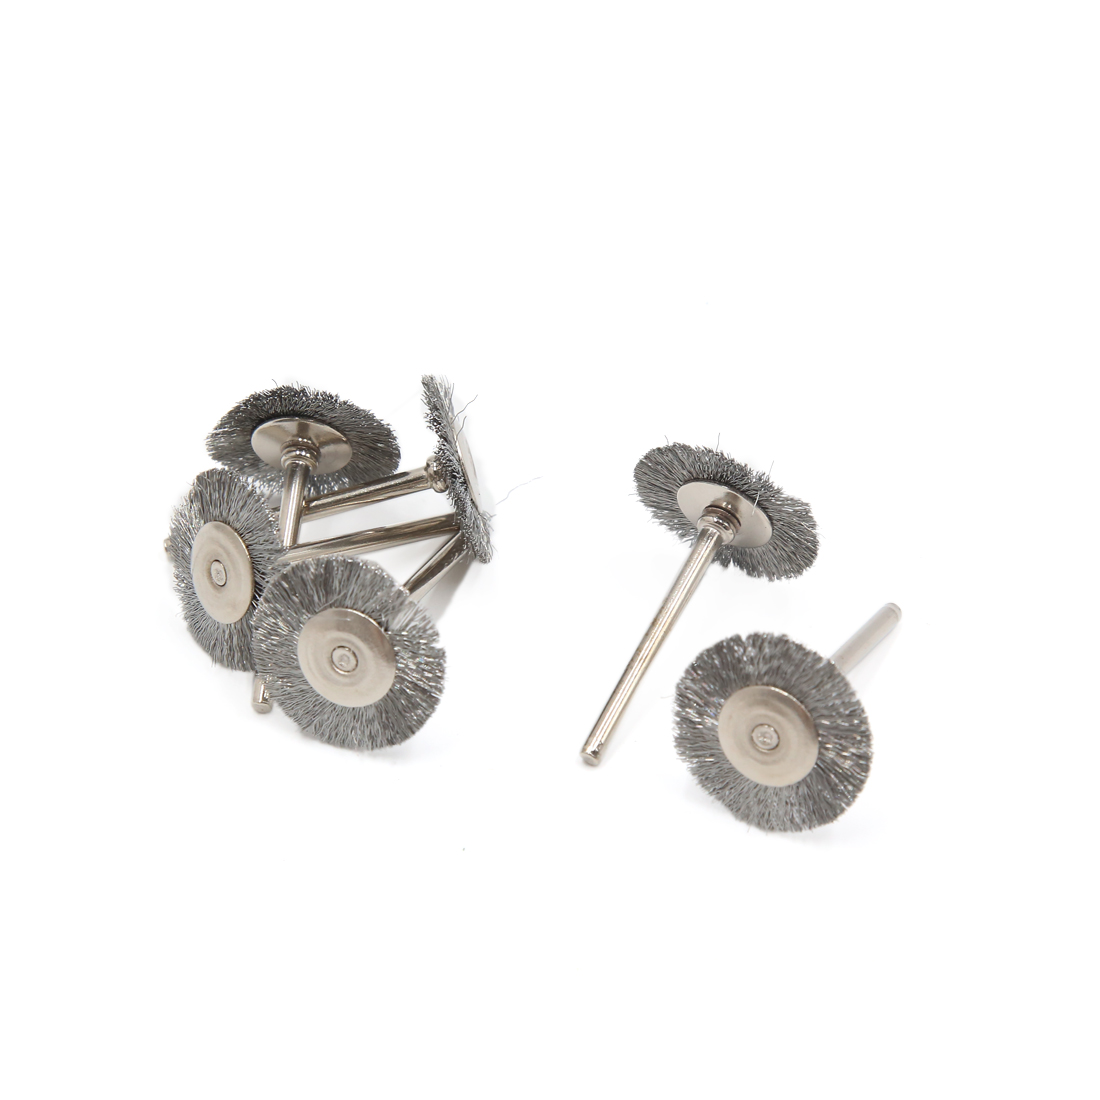 6 Pcs Stainless Steel T Type Wire Brush Polishing Wheels Full for Rotary Tools